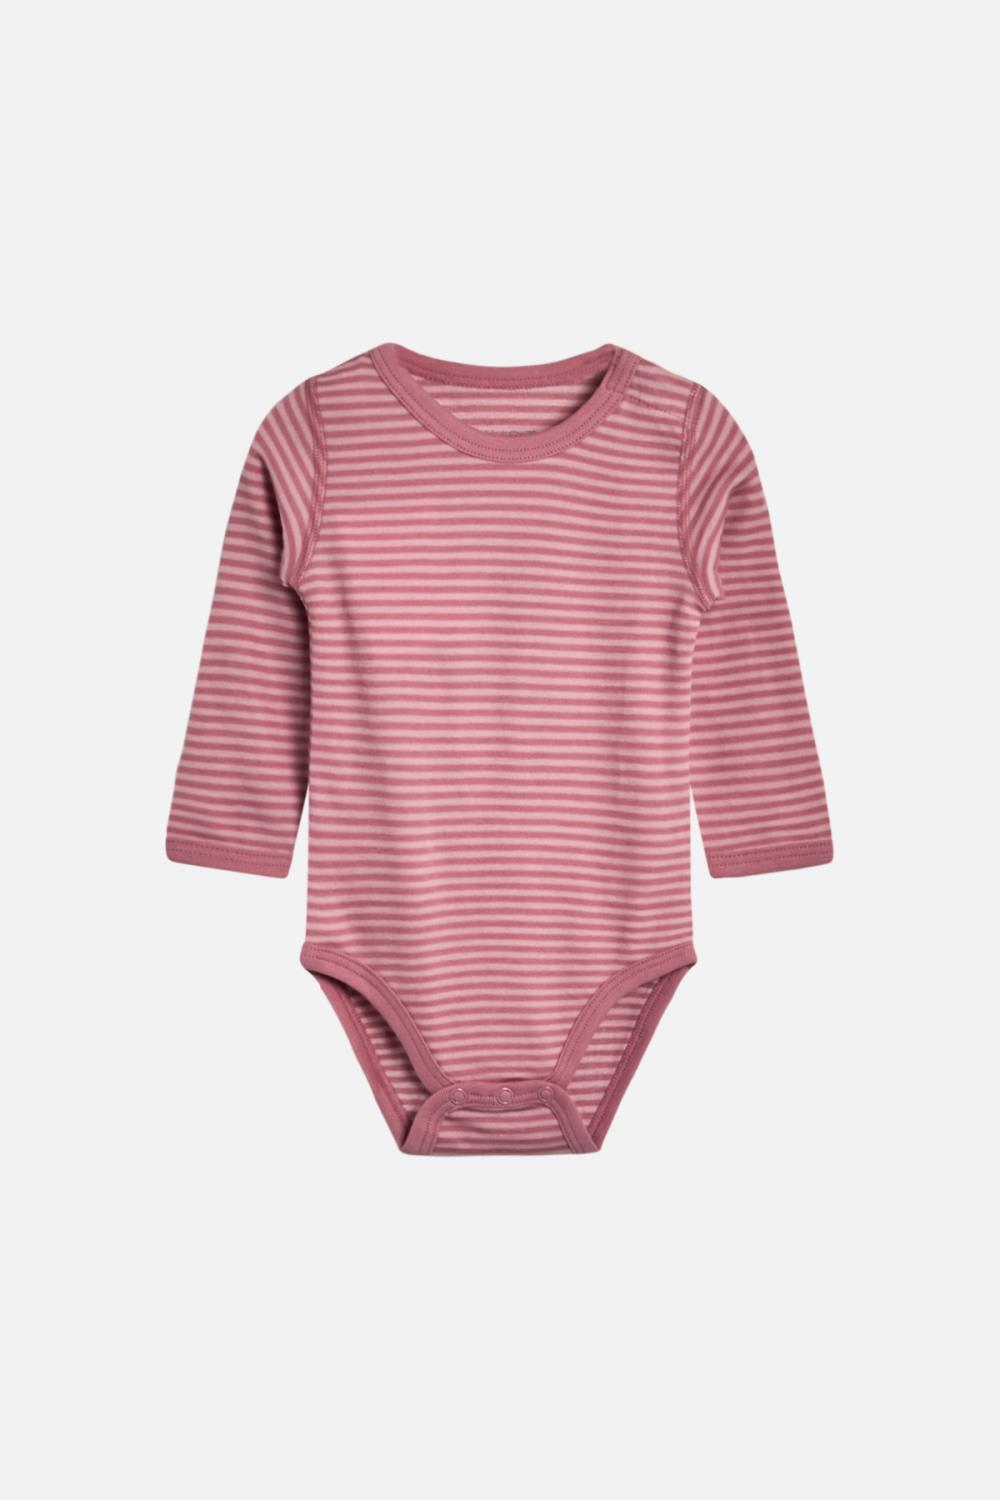 Hust and Claire - Body Baloo med striper i ull/bambus, dusty rose